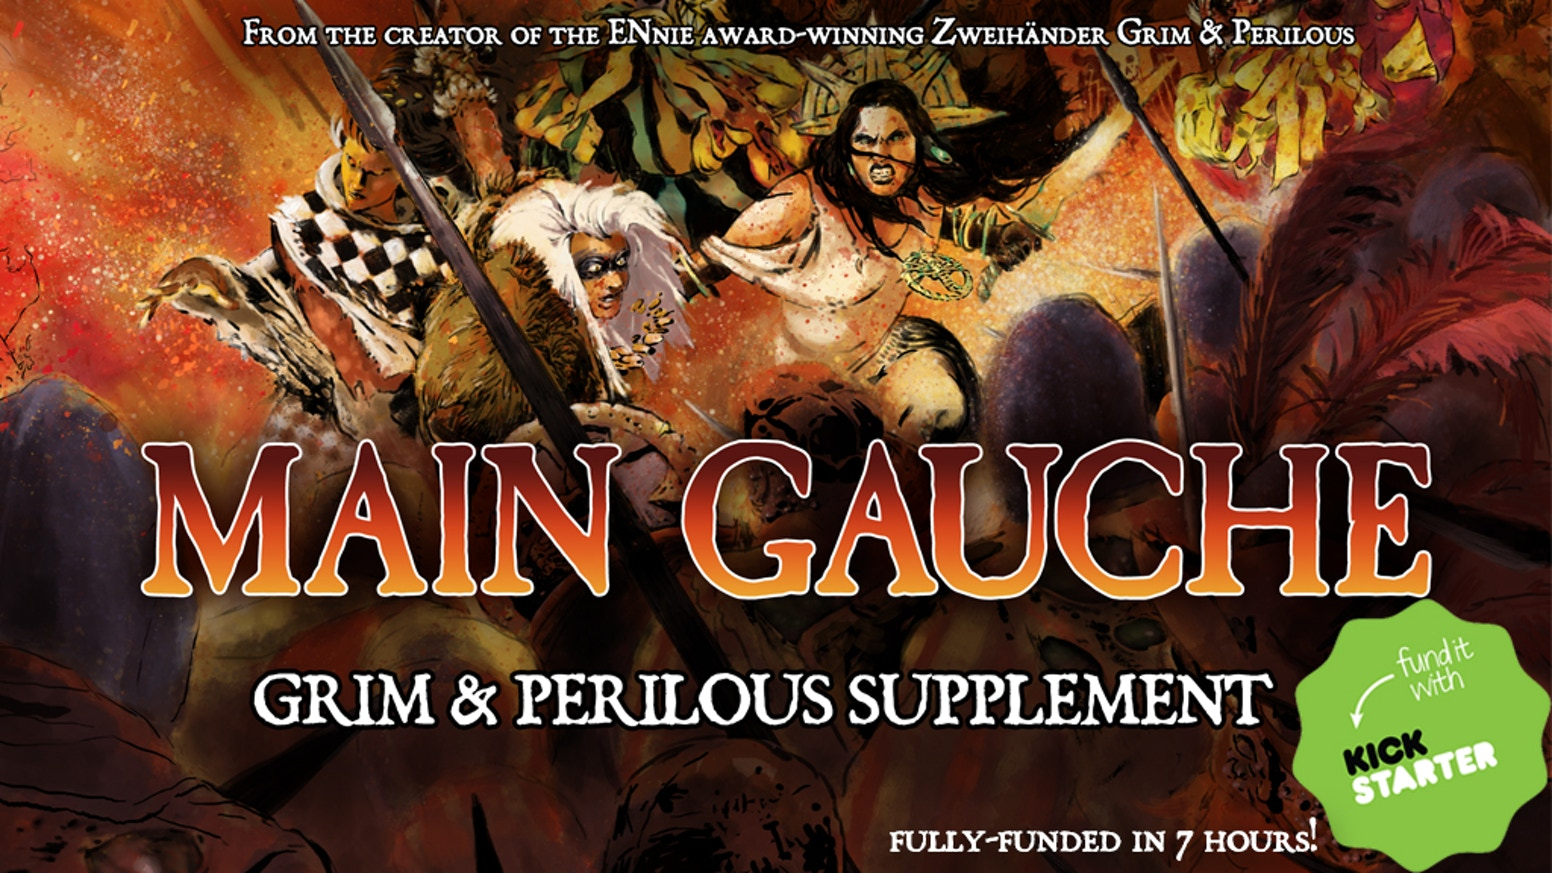 MAIN GAUCHE is a chaos expansion for the ENnie award-winning Best Game & Product of the Year ZWEIHÄNDER Grim & Perilous RPG